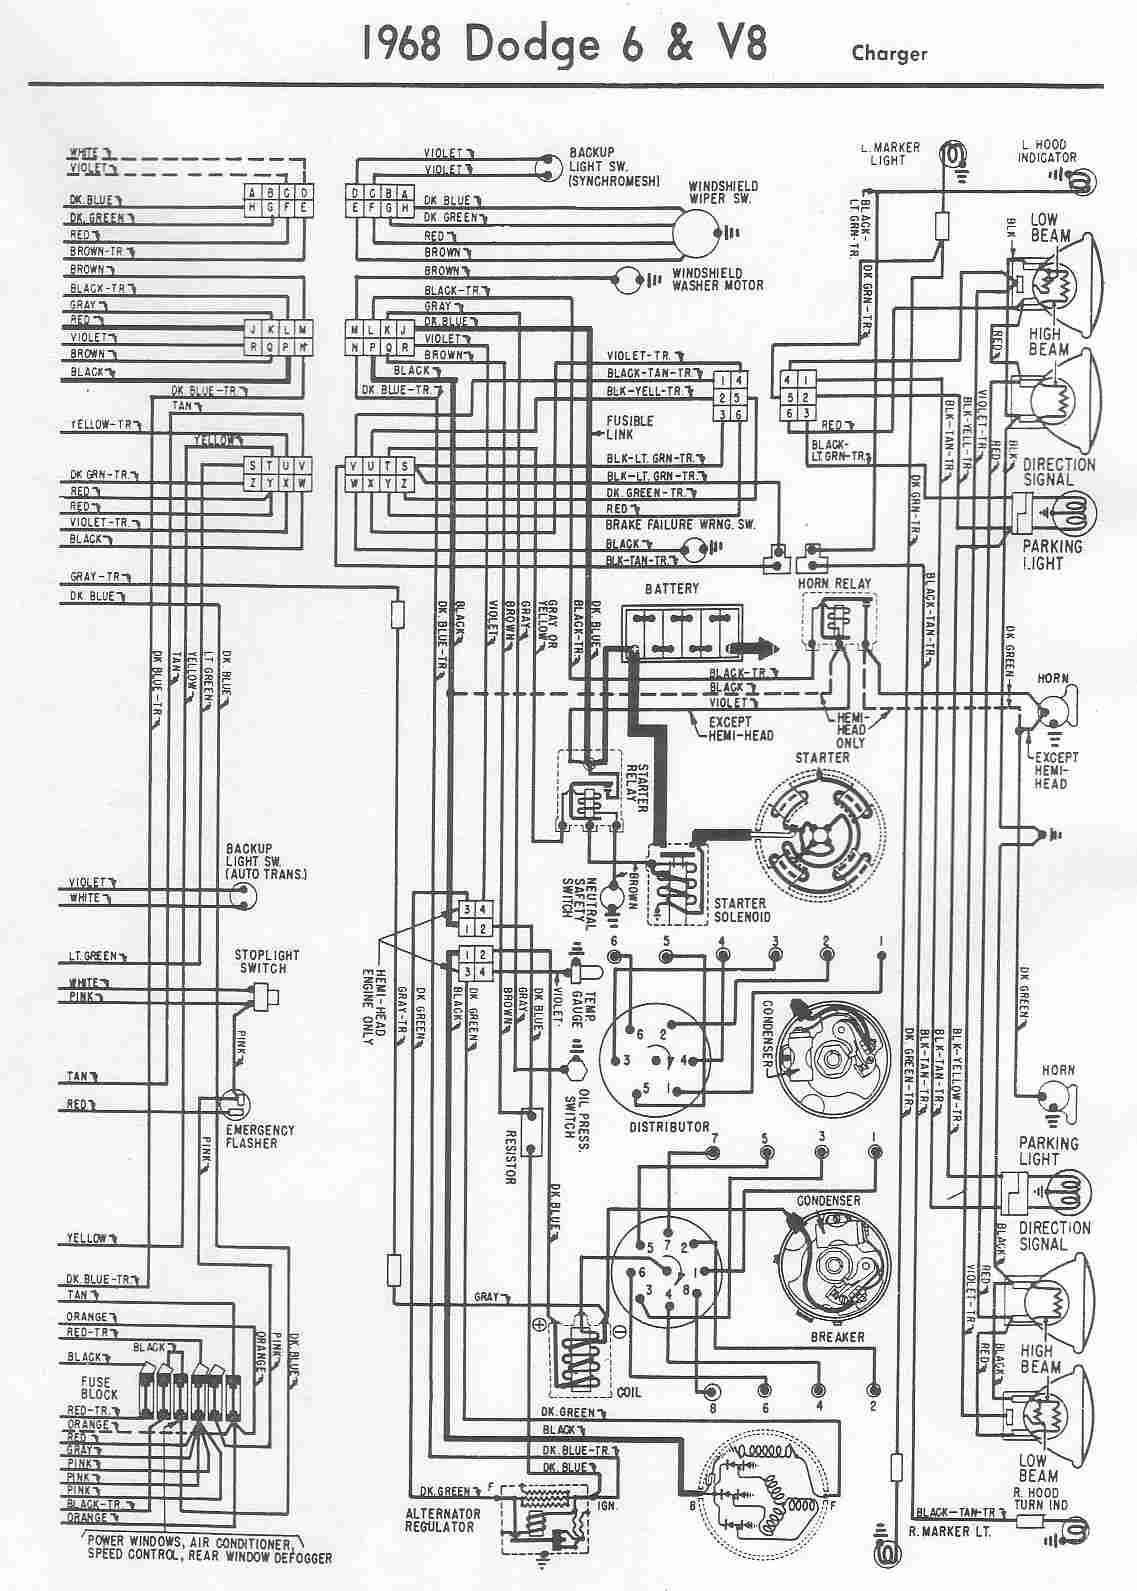 charger electrical wiring diagram of 1968 dodge 6 and v8?t=1508404771 dodge car manuals, wiring diagrams pdf & fault codes Multi Speed Blower Motor Wiring at eliteediting.co